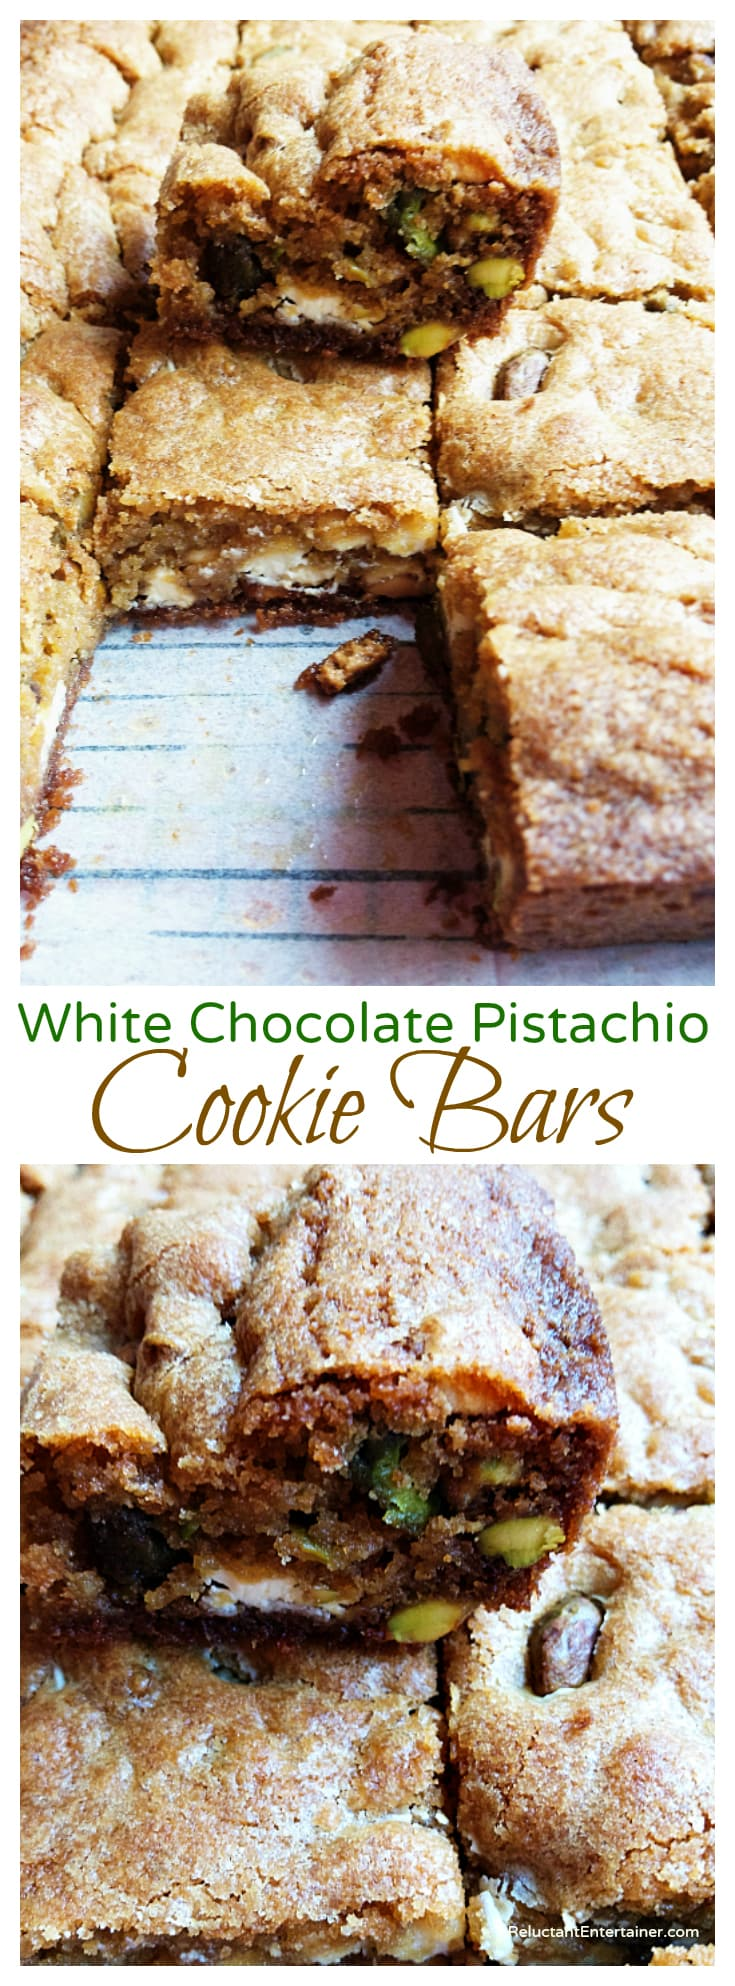 White Chocolate Pistachio Cookie Bars Recipe